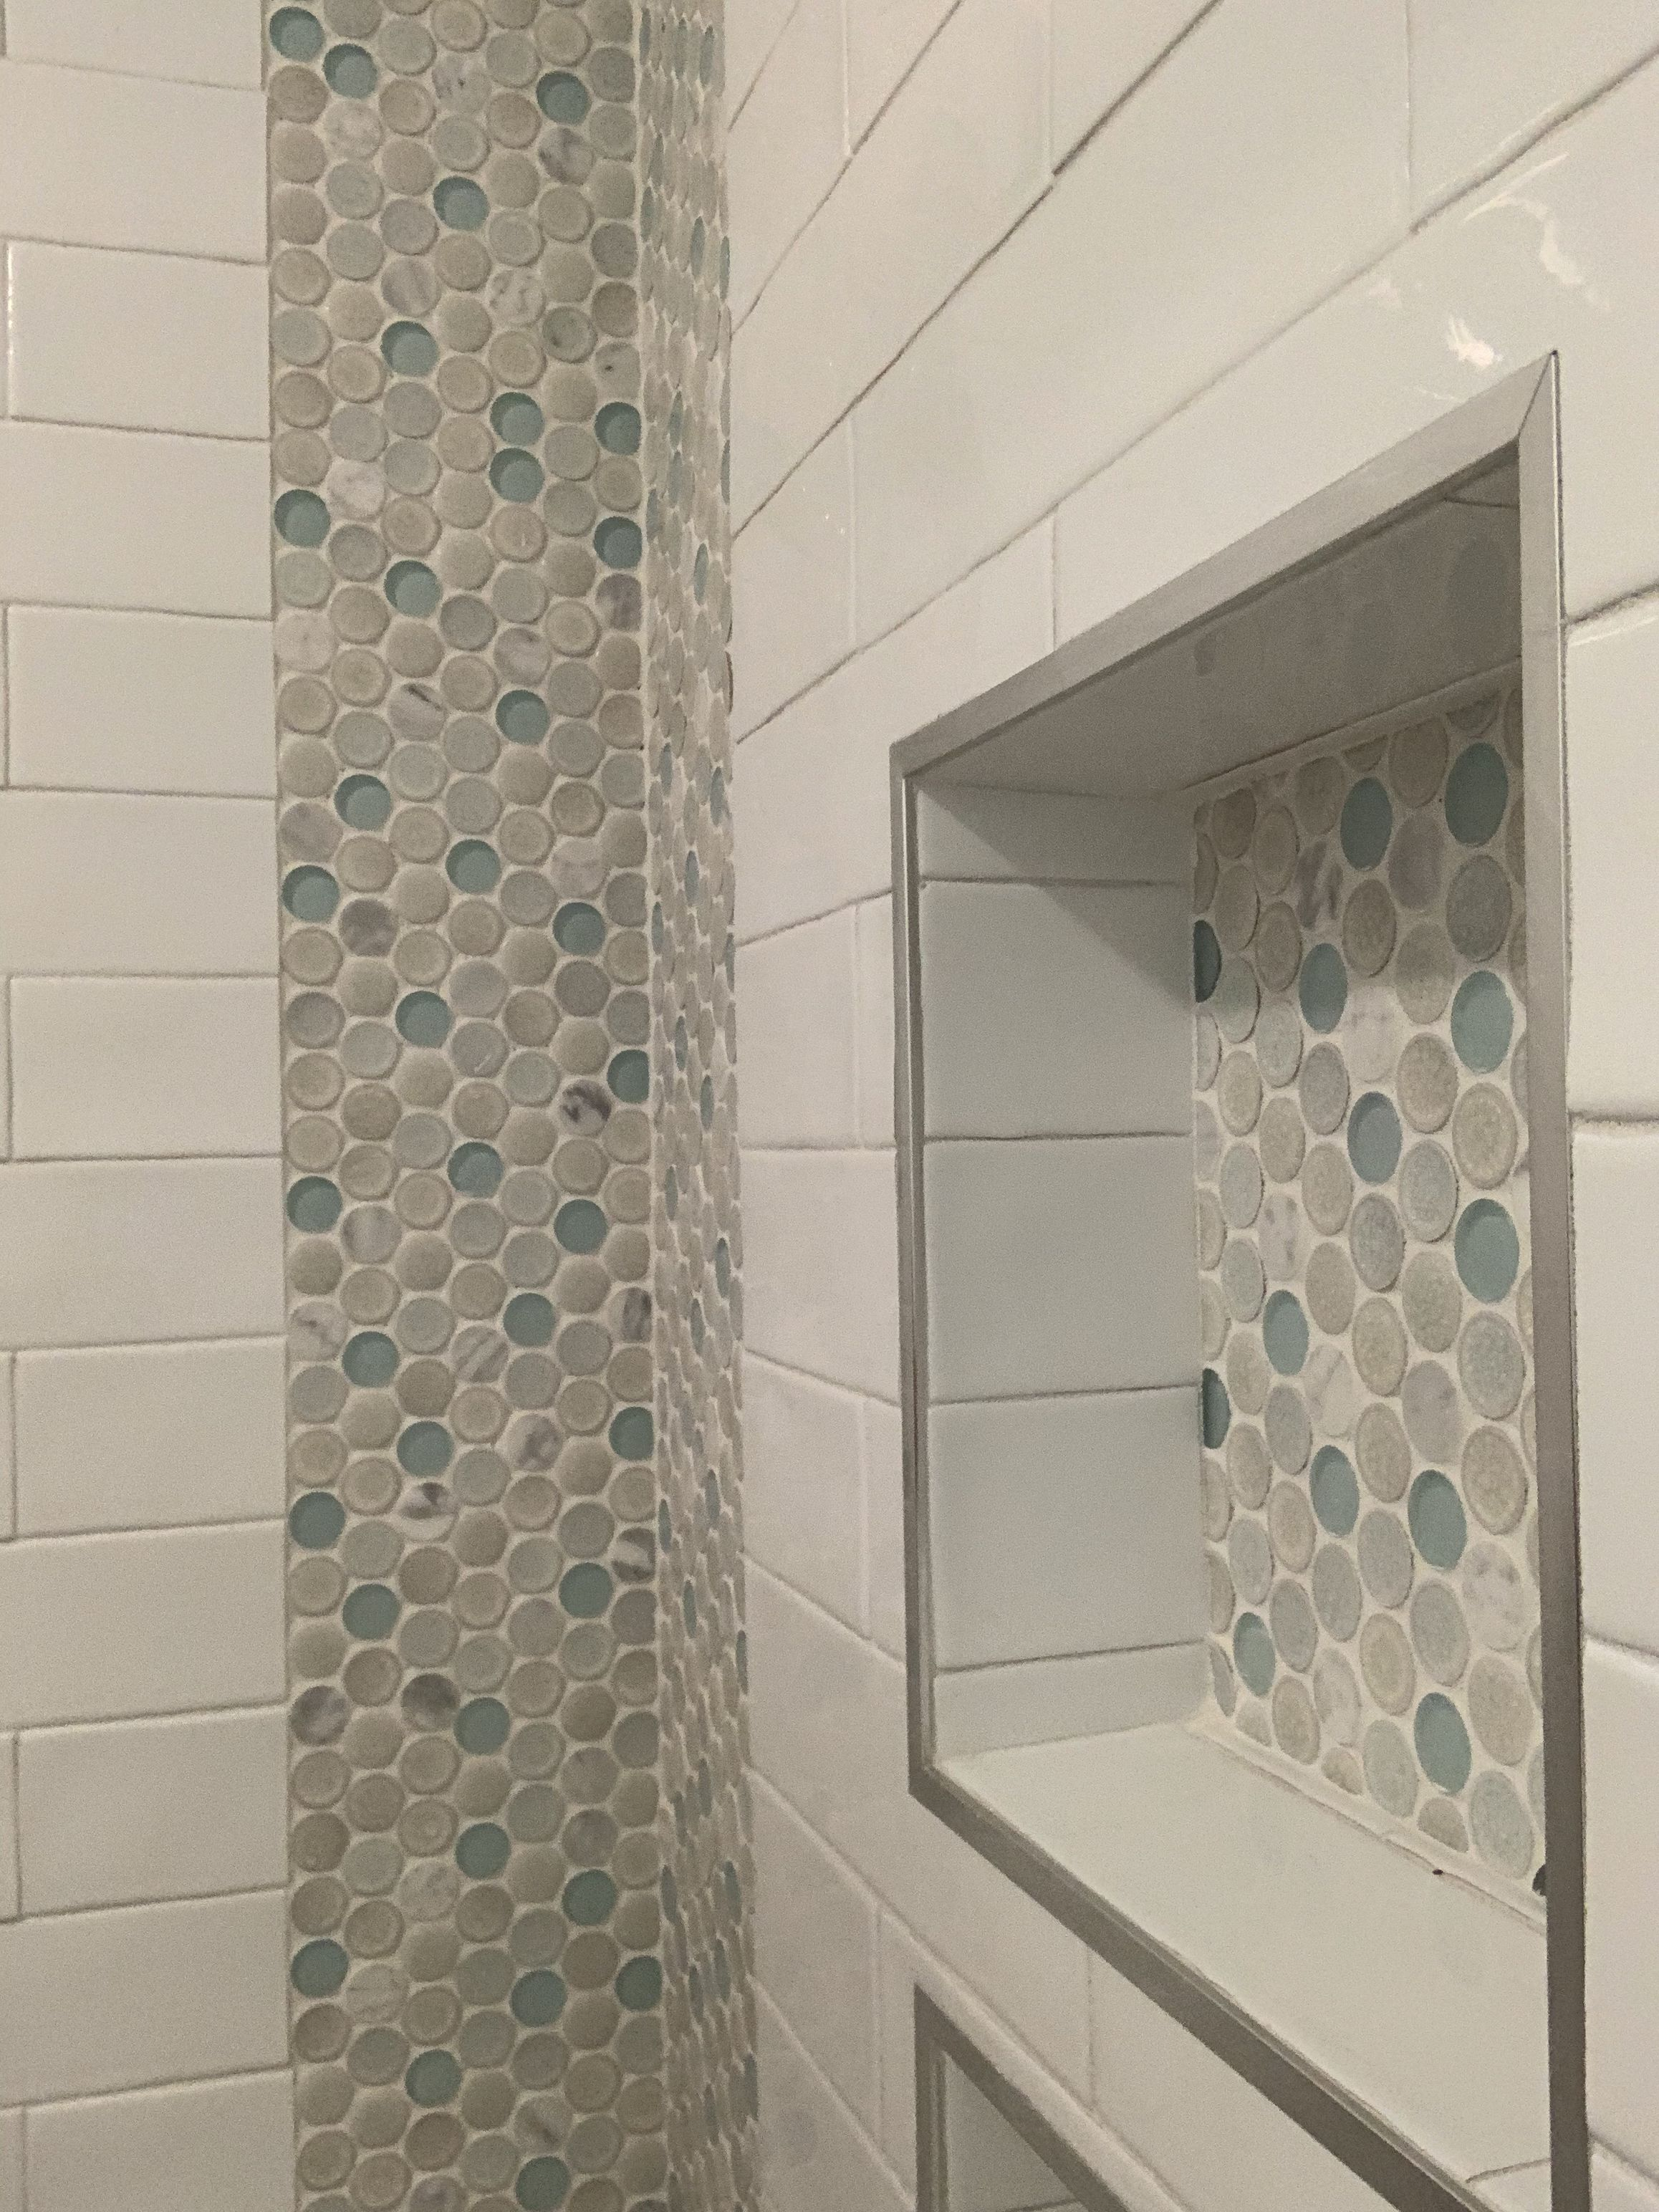 We Used The Inside Corner To Create Design As A Vertical Tile Border And Matched The Finish With The Inside Of The Bathtub Tile Shower Alcove Bathroom Styling